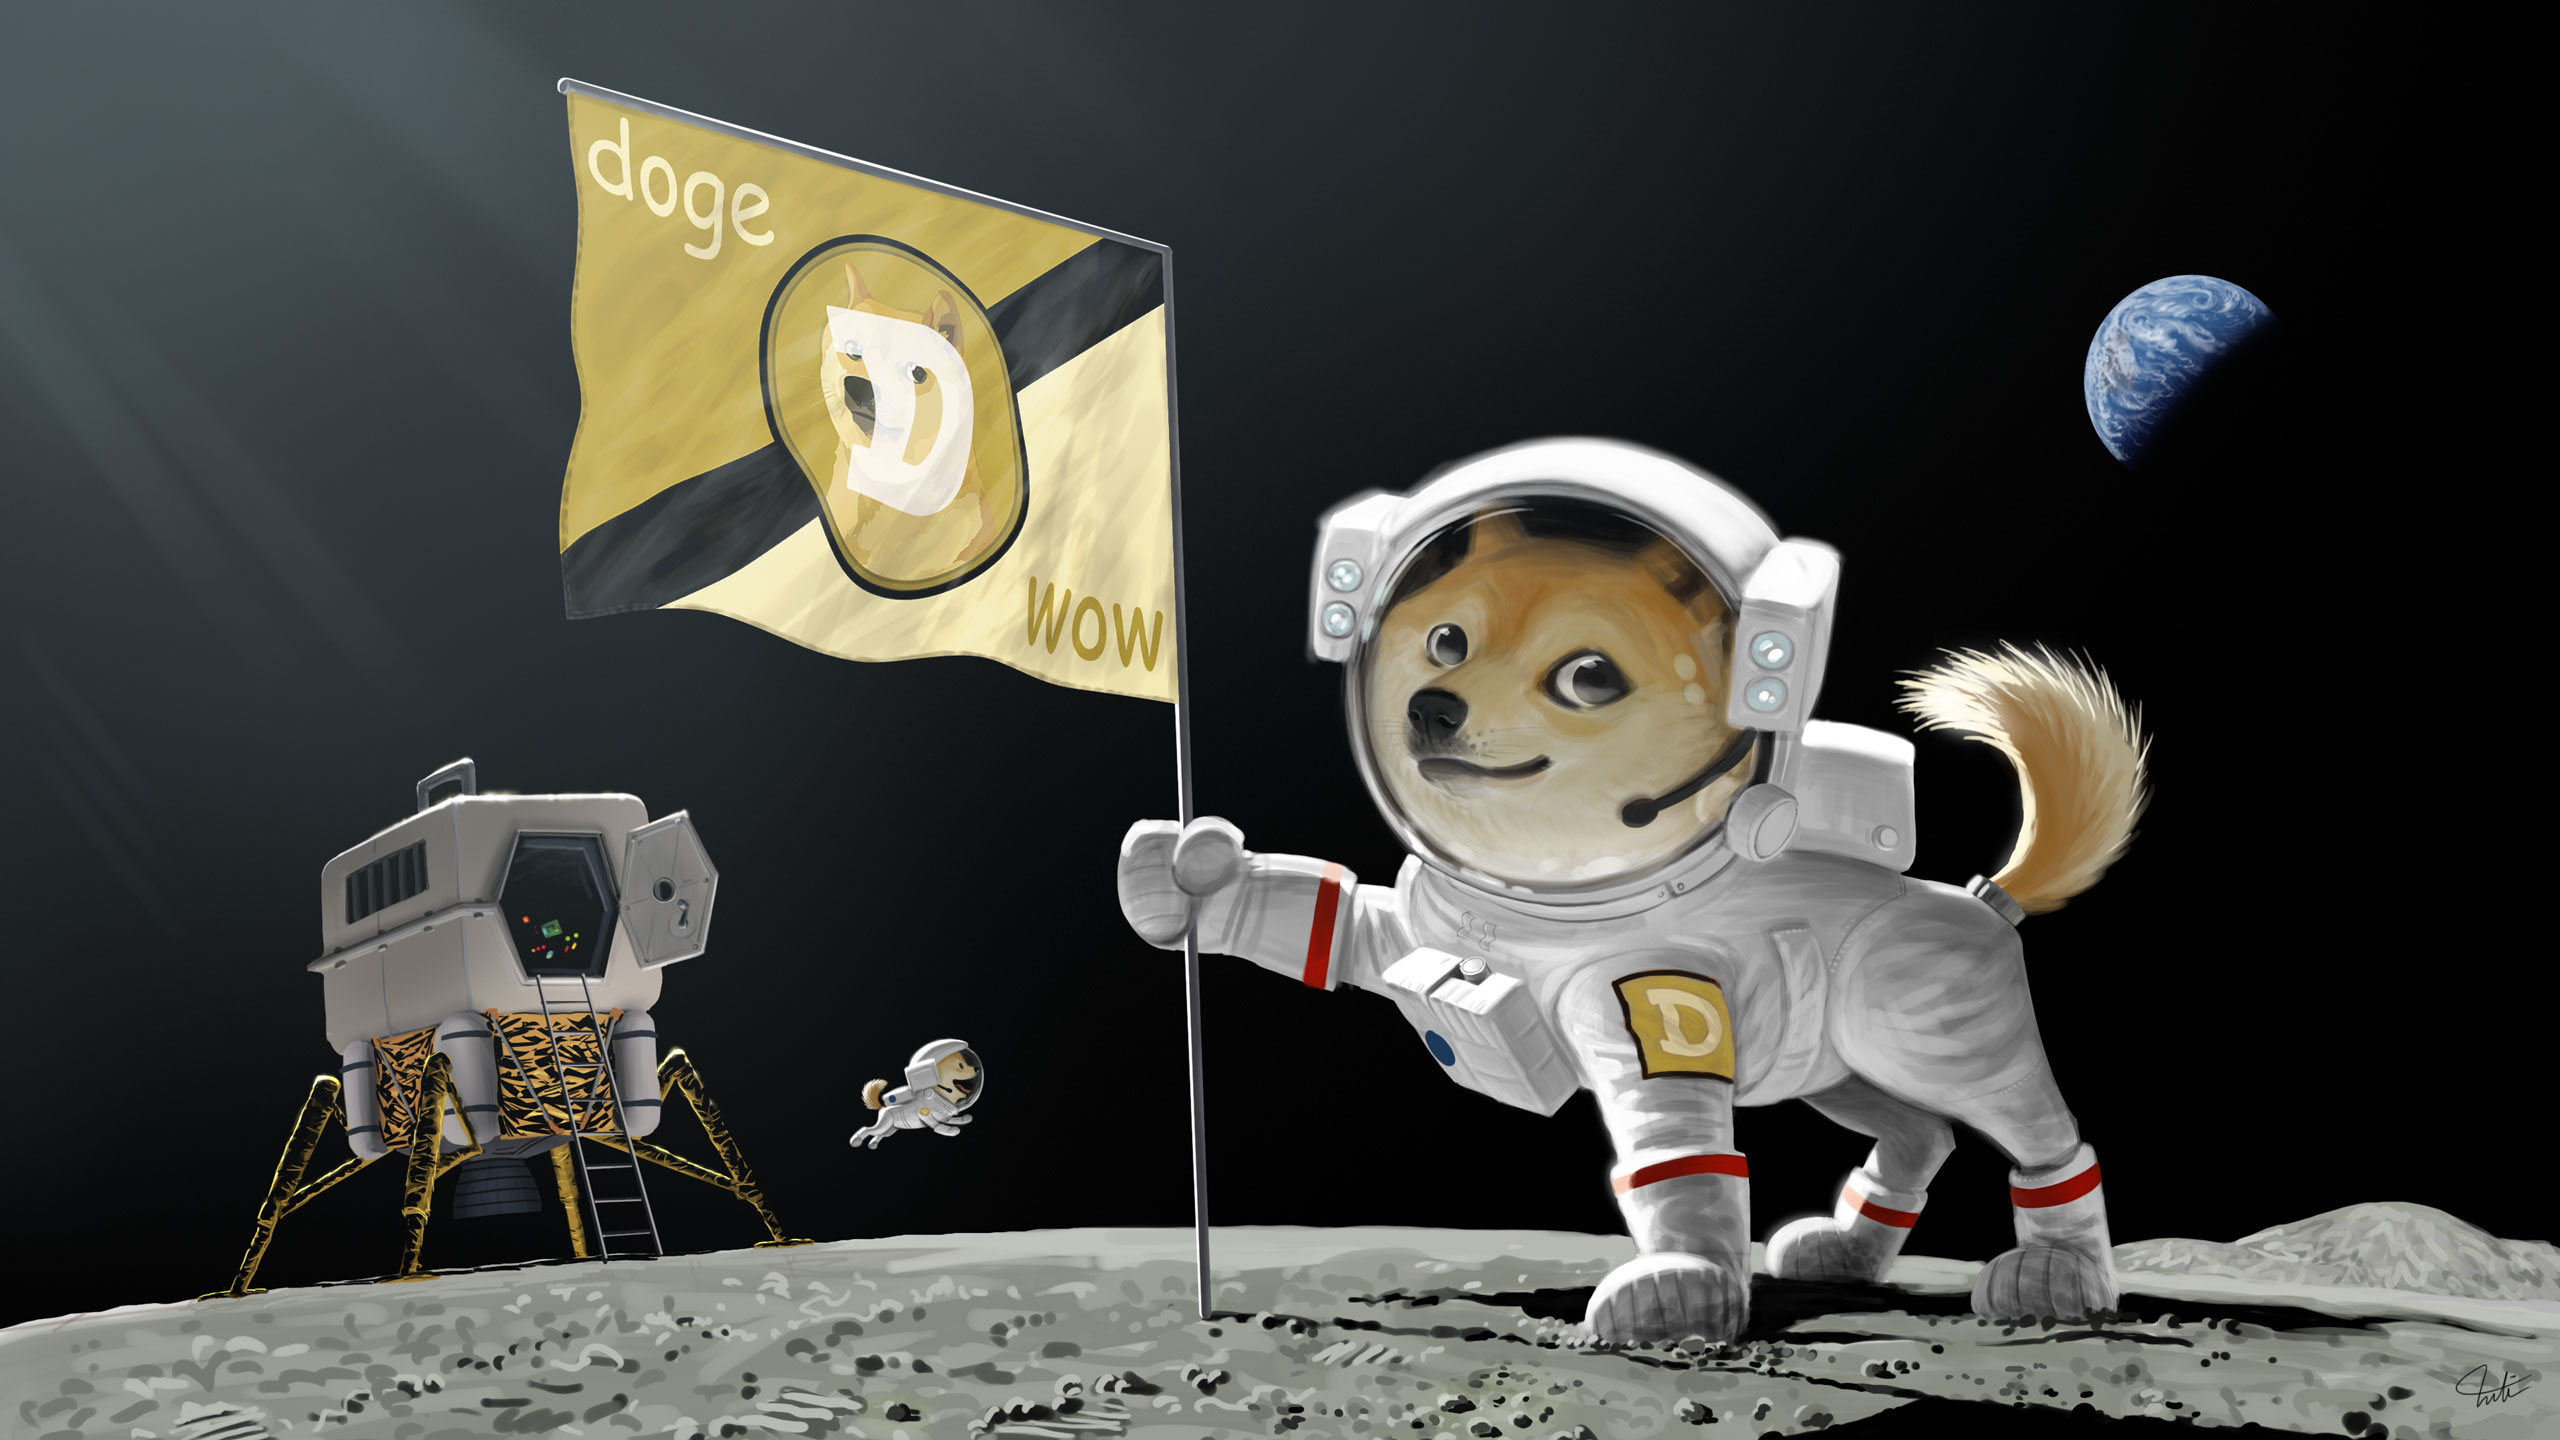 Dogecoin has gone up 33+% in the past 24 hours. Moon ...